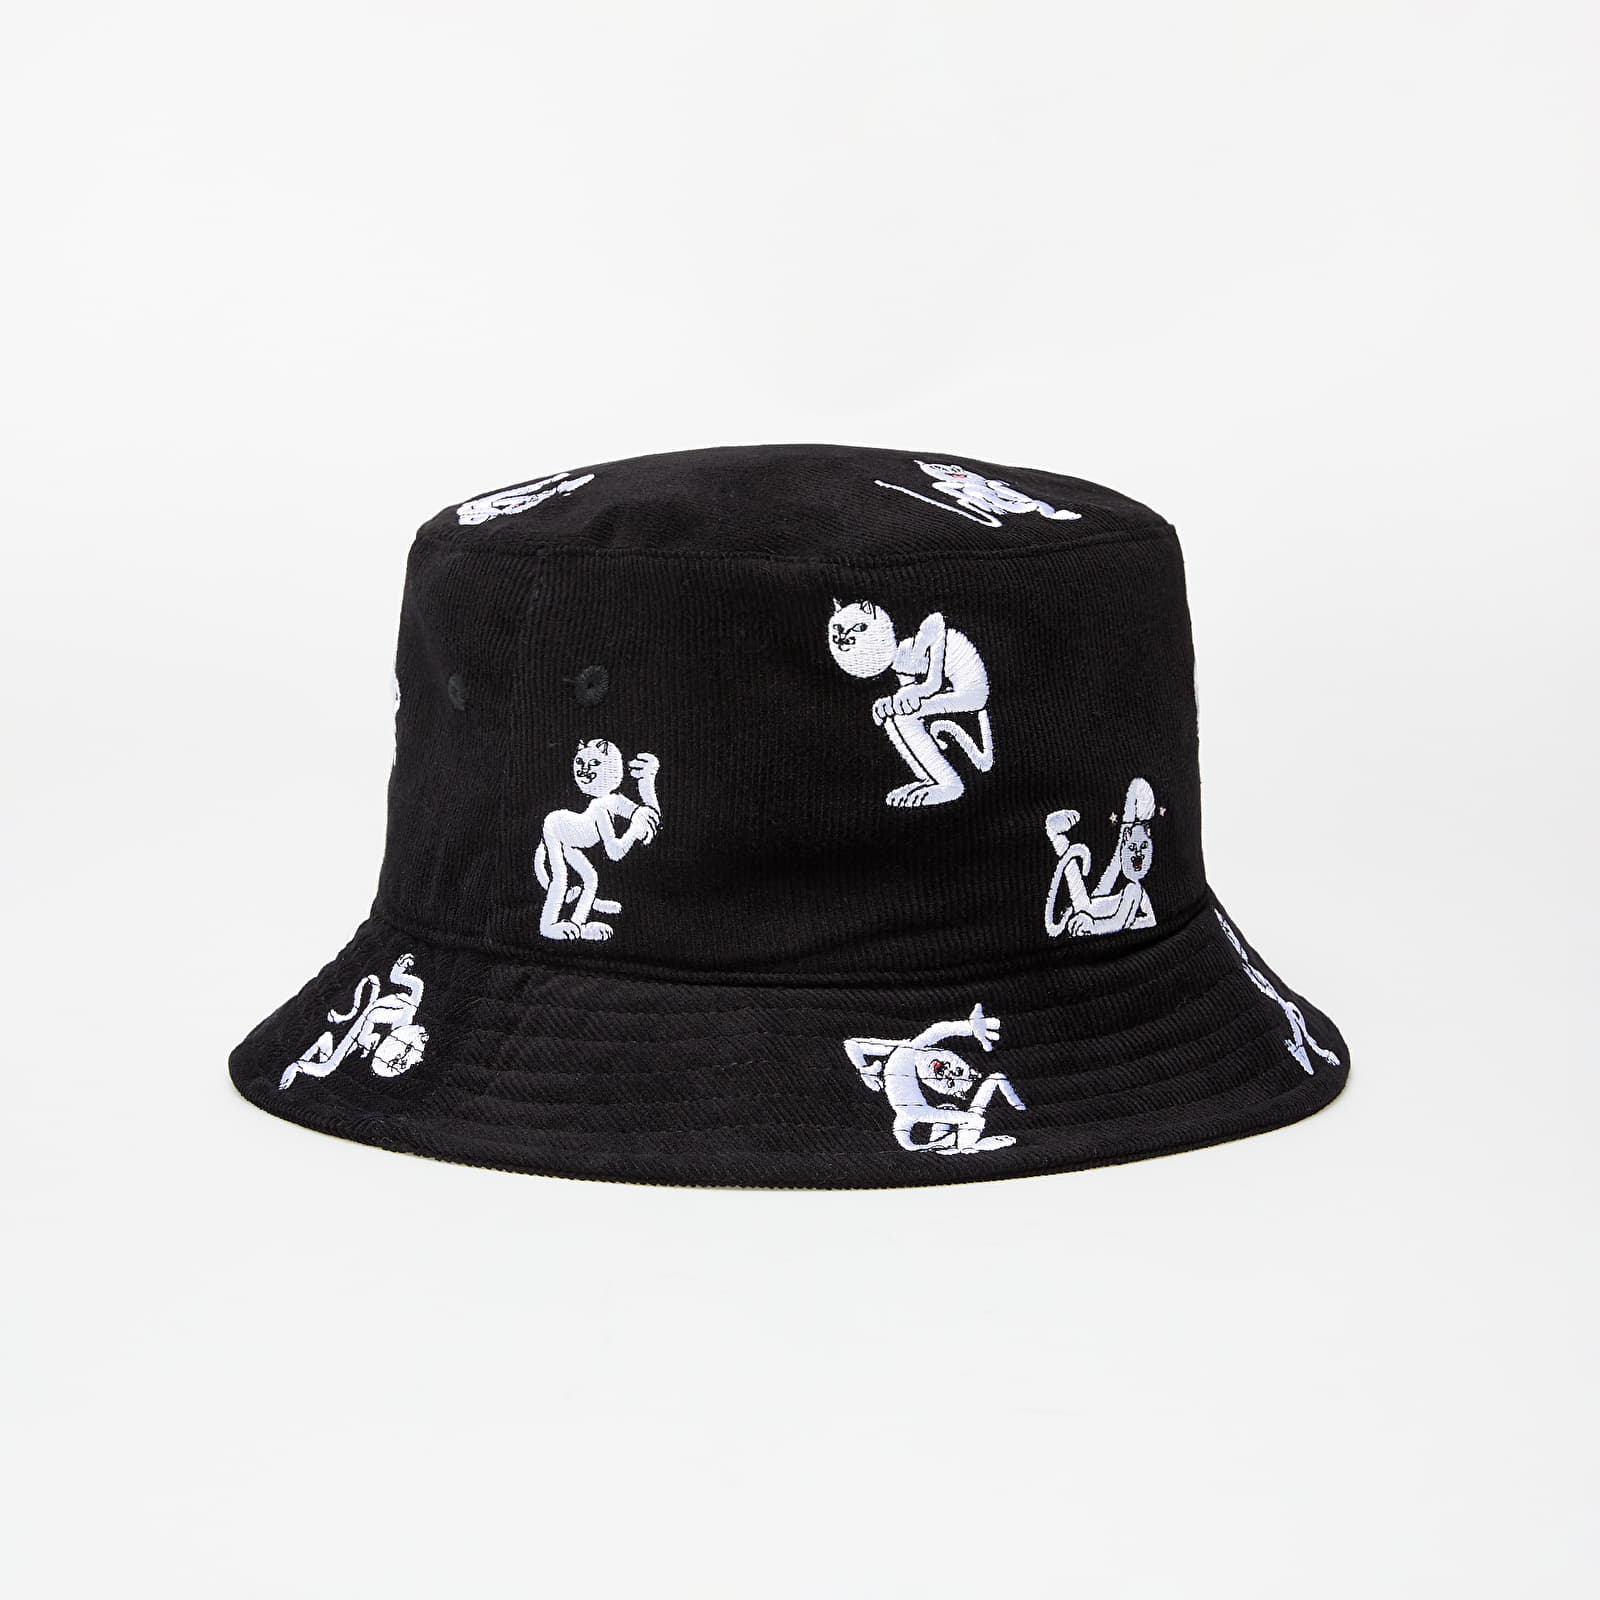 RIPNDIP Dance Party Bucket Hat Black univerzální